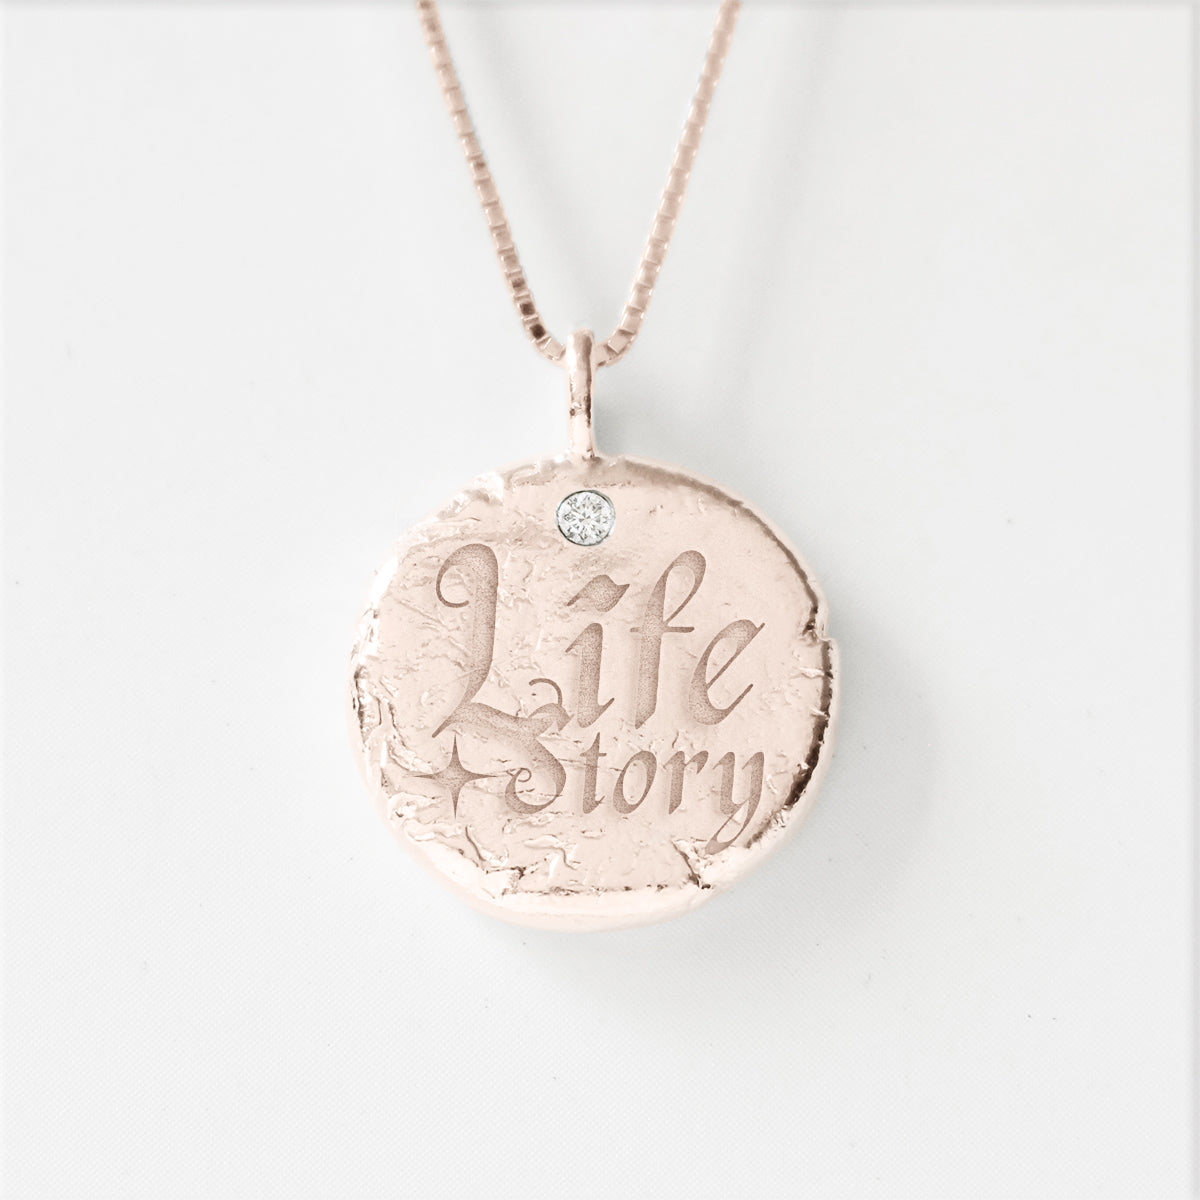 Life Story - 925 Silver Diamond Necklace for Empowerment